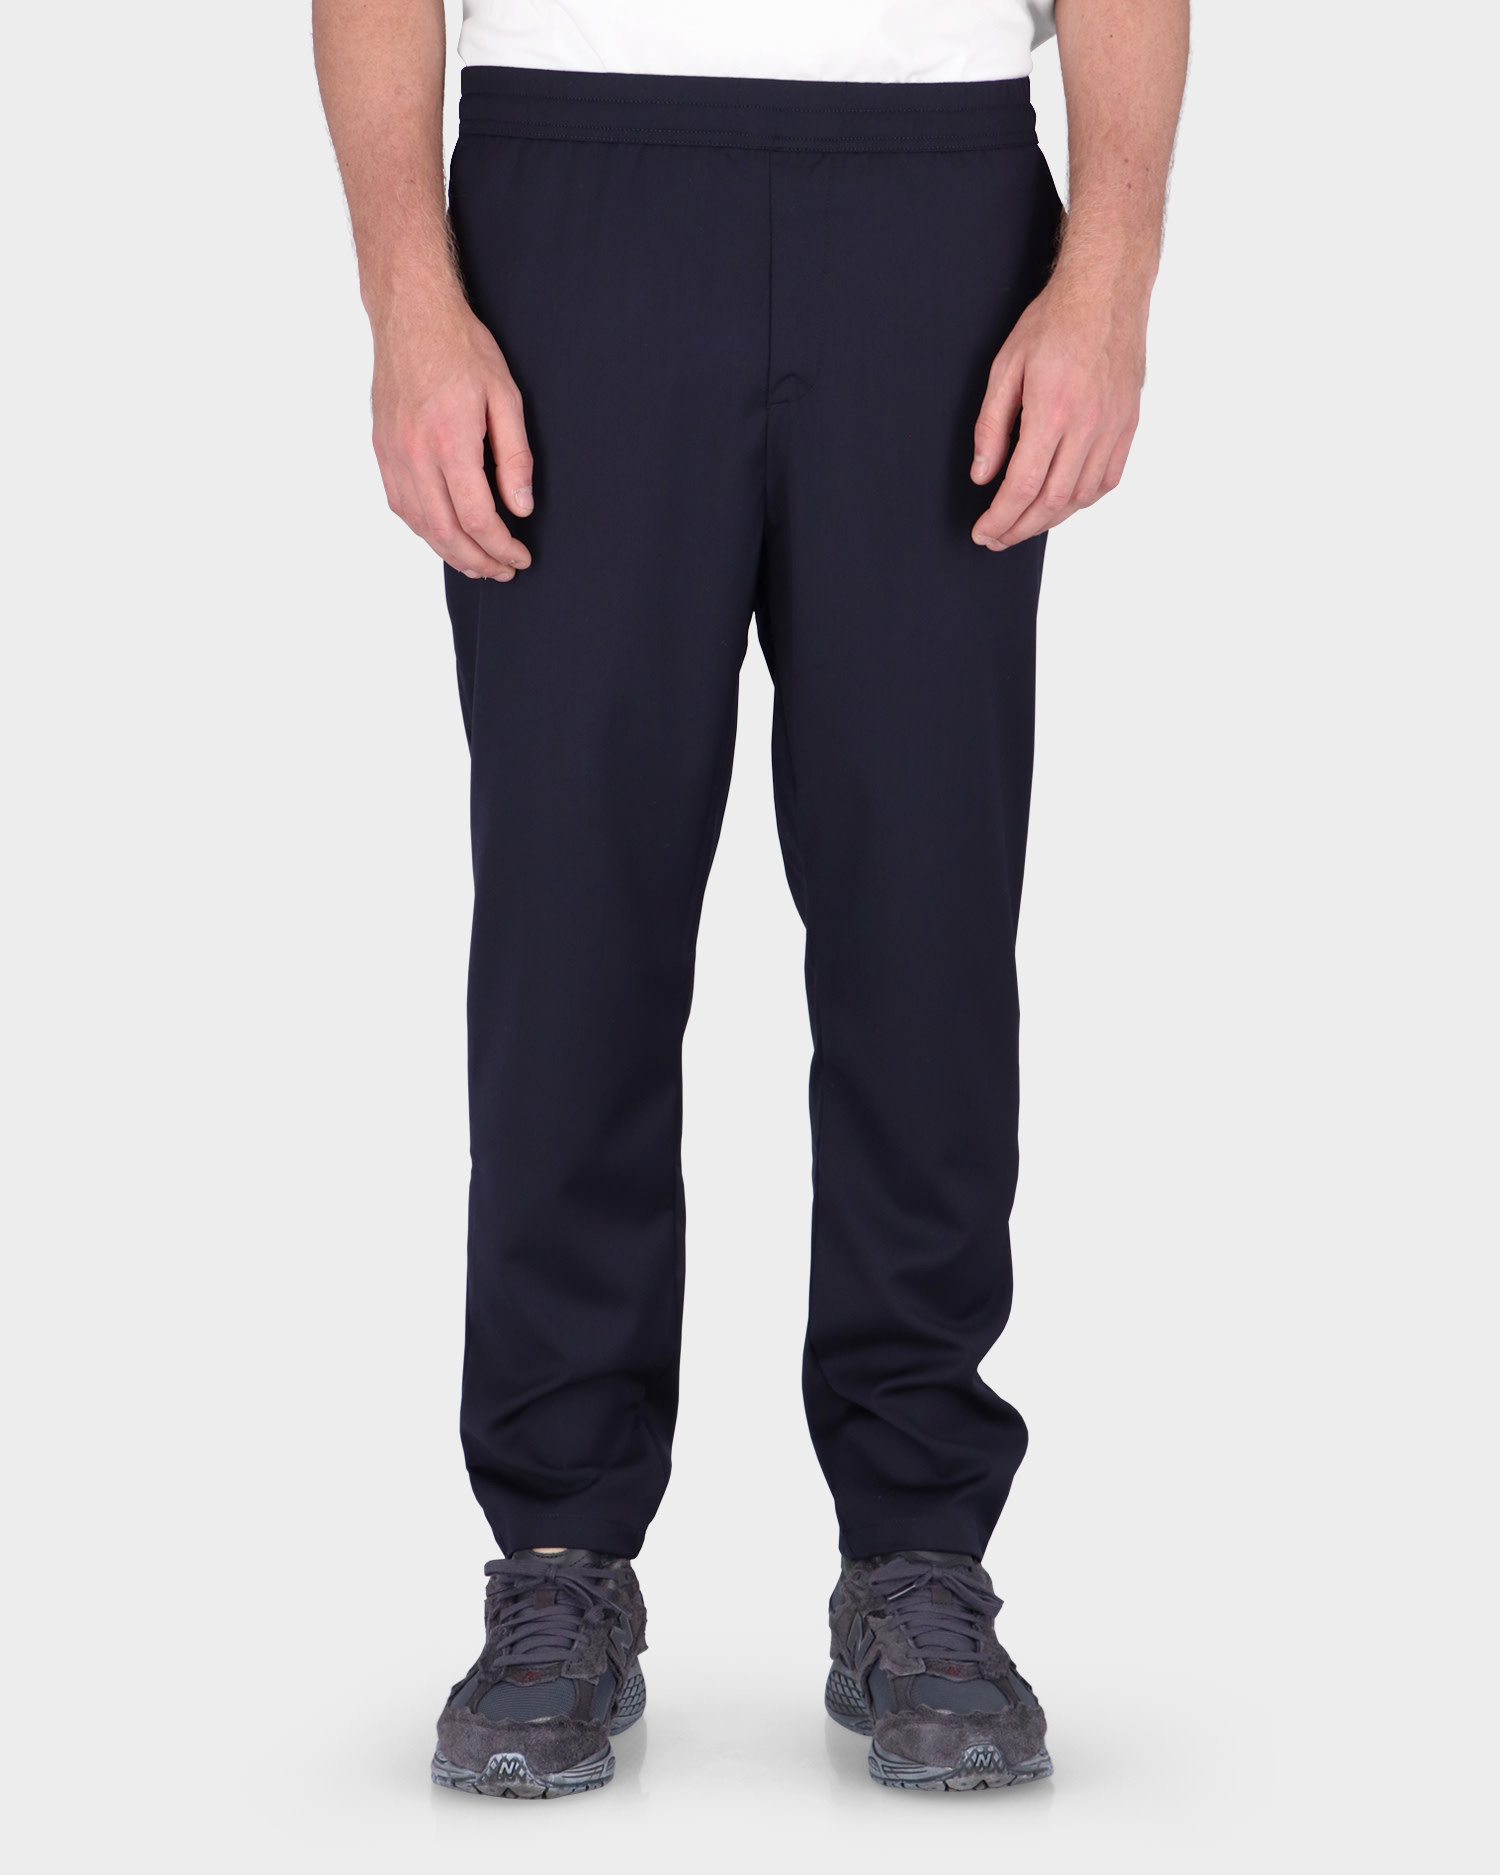 Lack Of Guidance Leo Trousers Navy